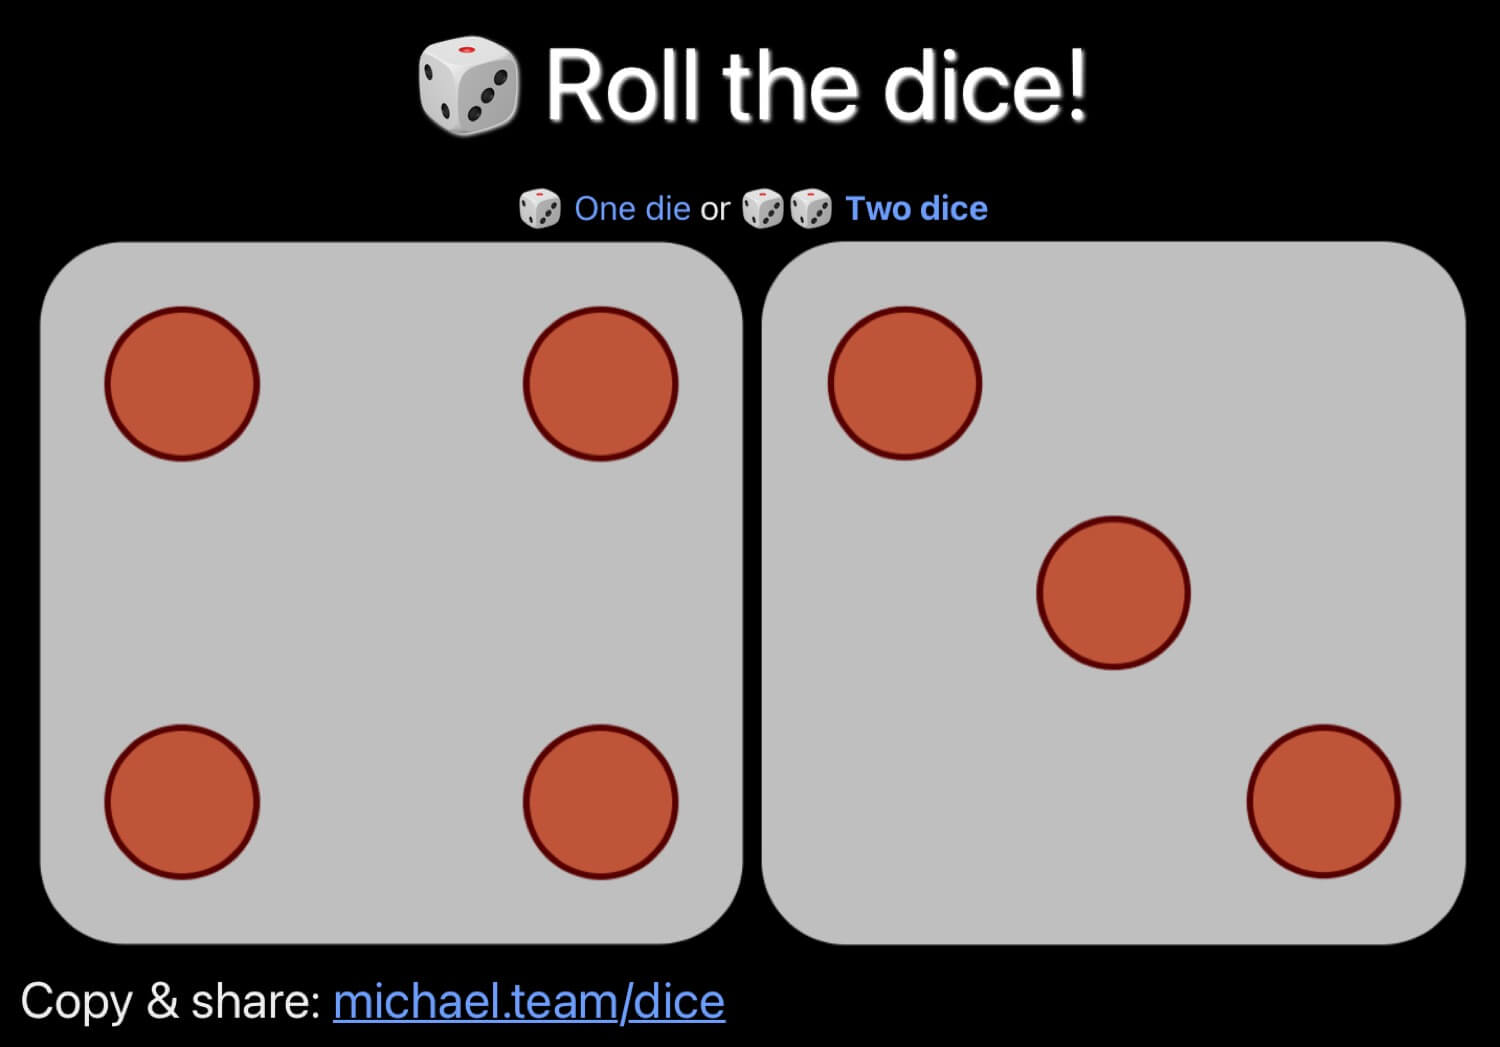 Rolling the virtual dice when playing board games! 🎲🎲